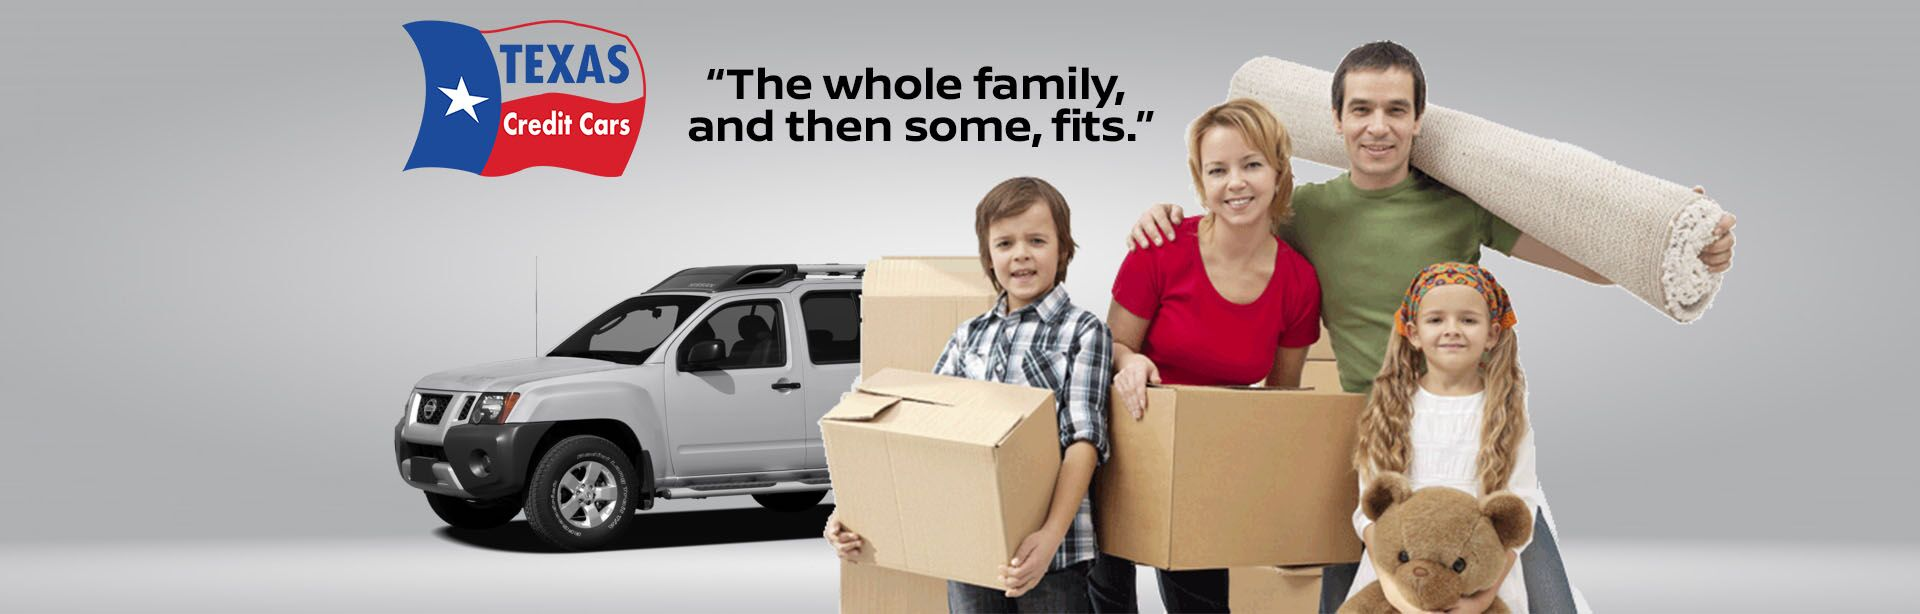 FITS FAMILY MOVING